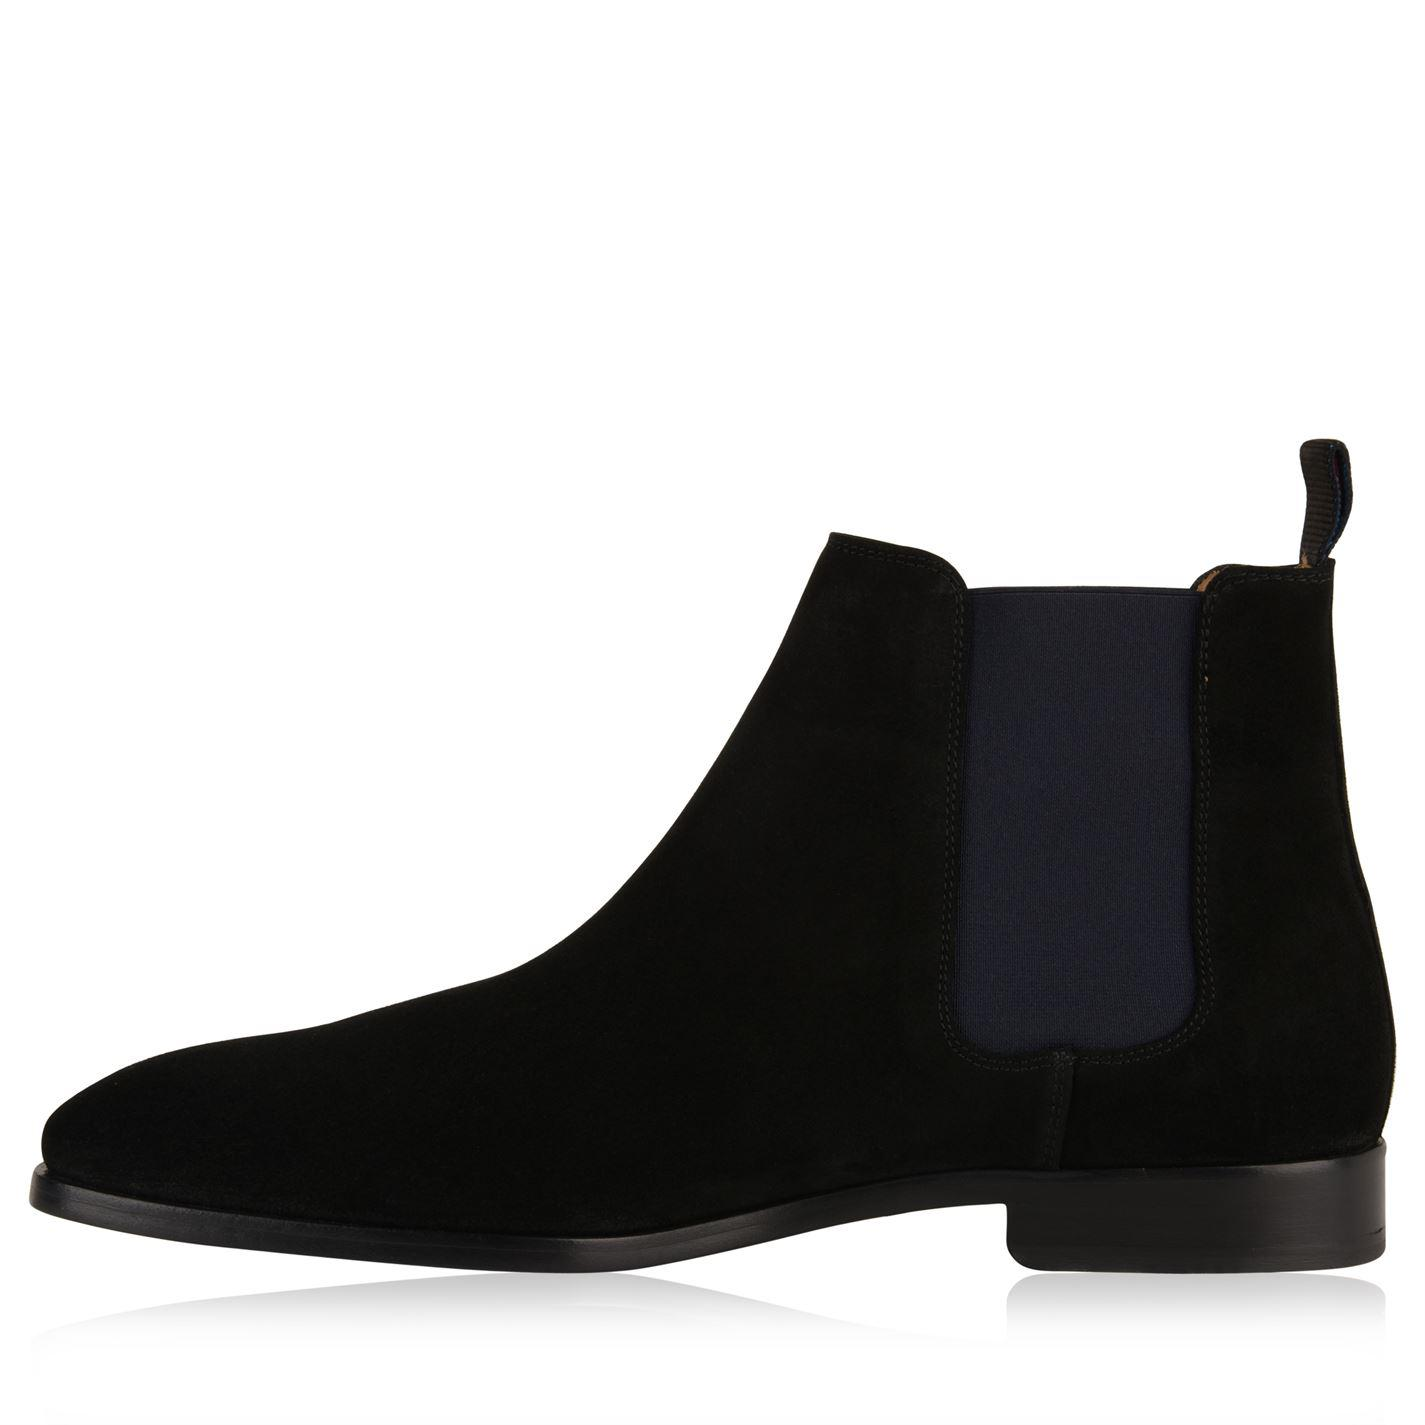 da168bccf50 PS by Paul Smith - Black Gerald Chelsea Boots for Men - Lyst. View  fullscreen